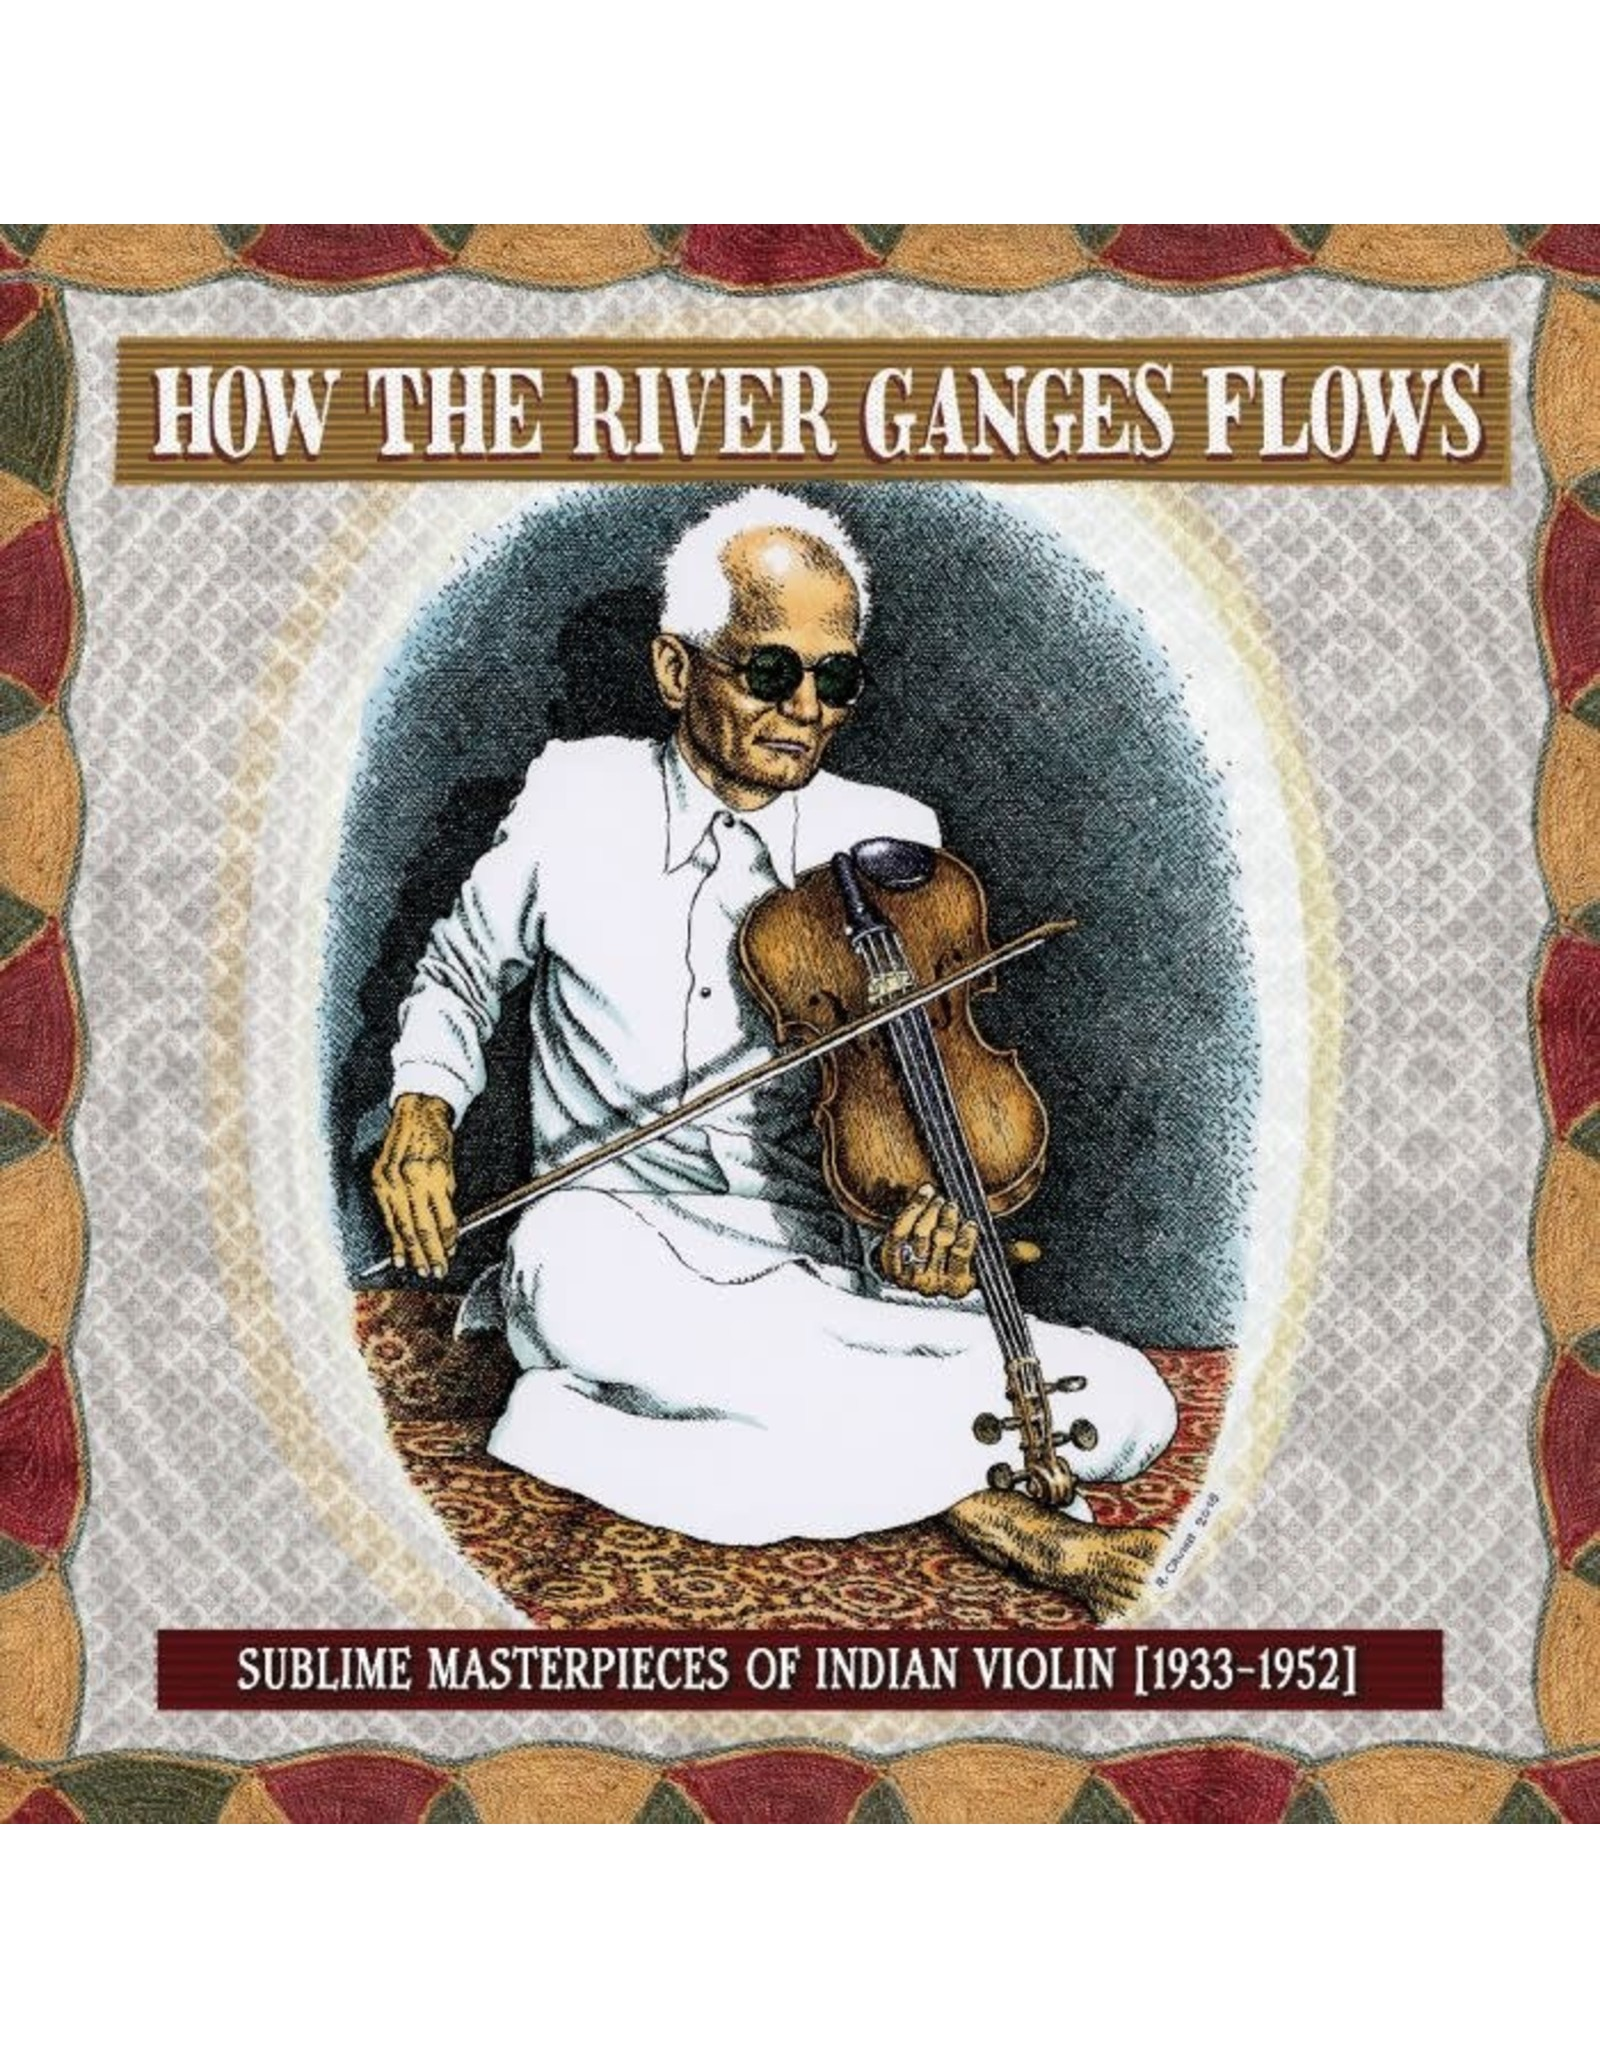 New Vinyl Various - How The River Ganges Flows: Sublime Masterpieces Of Indian Violin, 1933-1952 LP